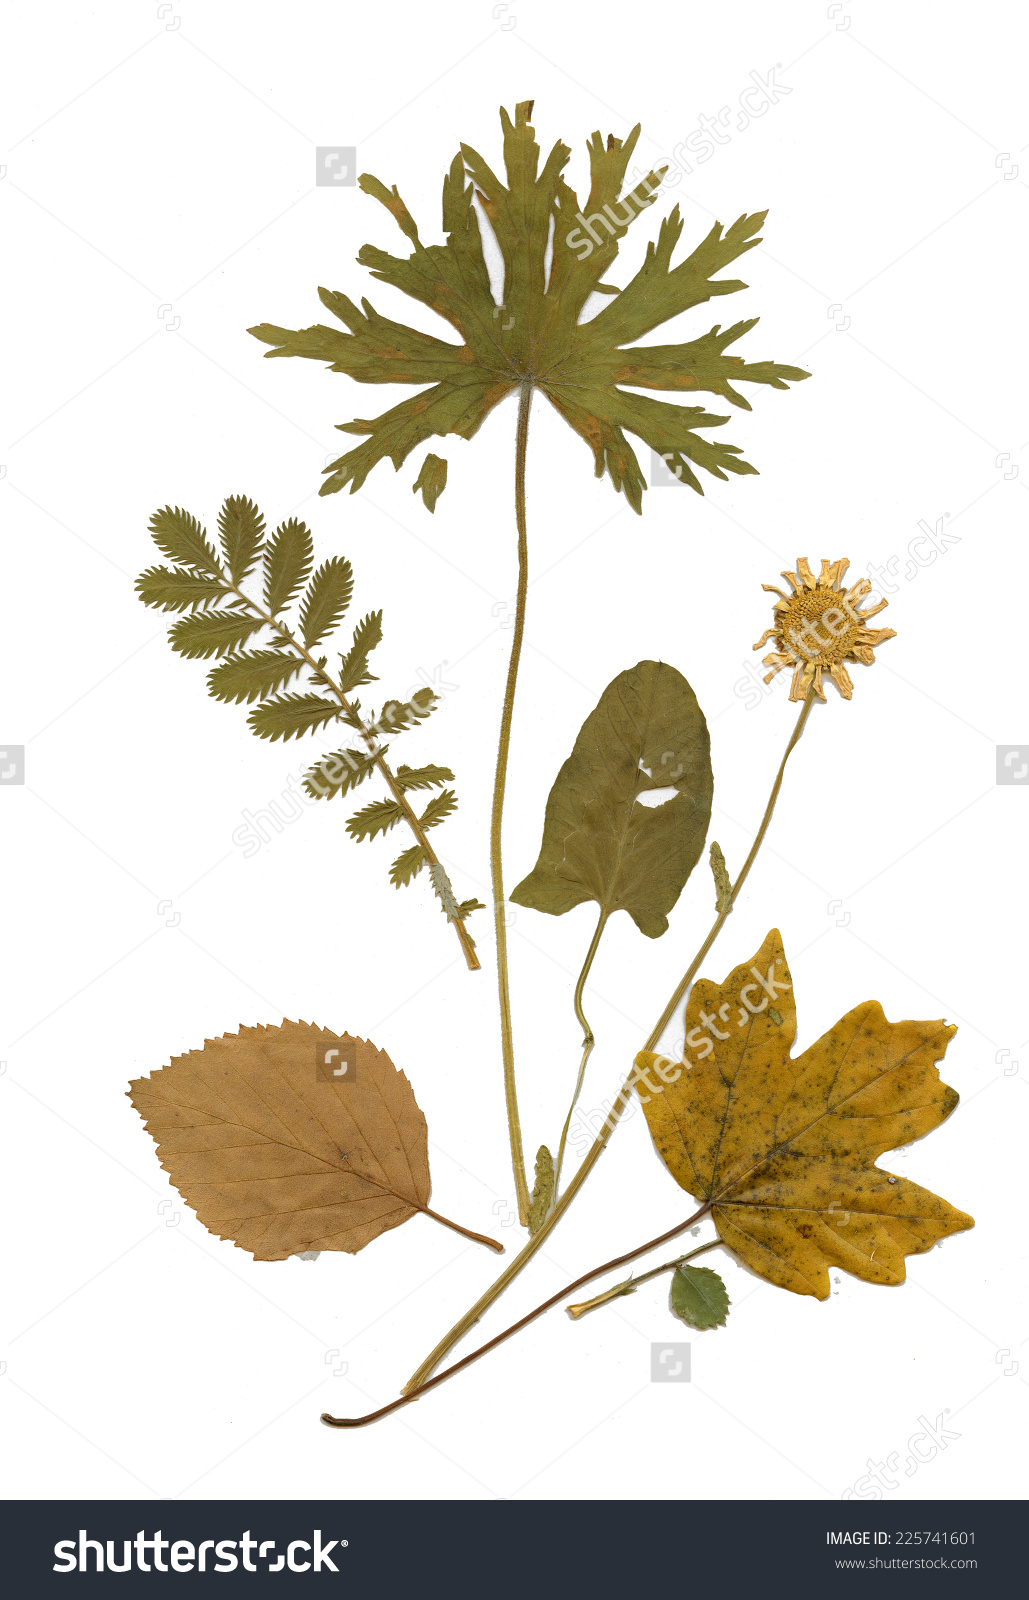 Dry Herbarium Plants Flowers Leaves Vector Stock Vector 225741601.